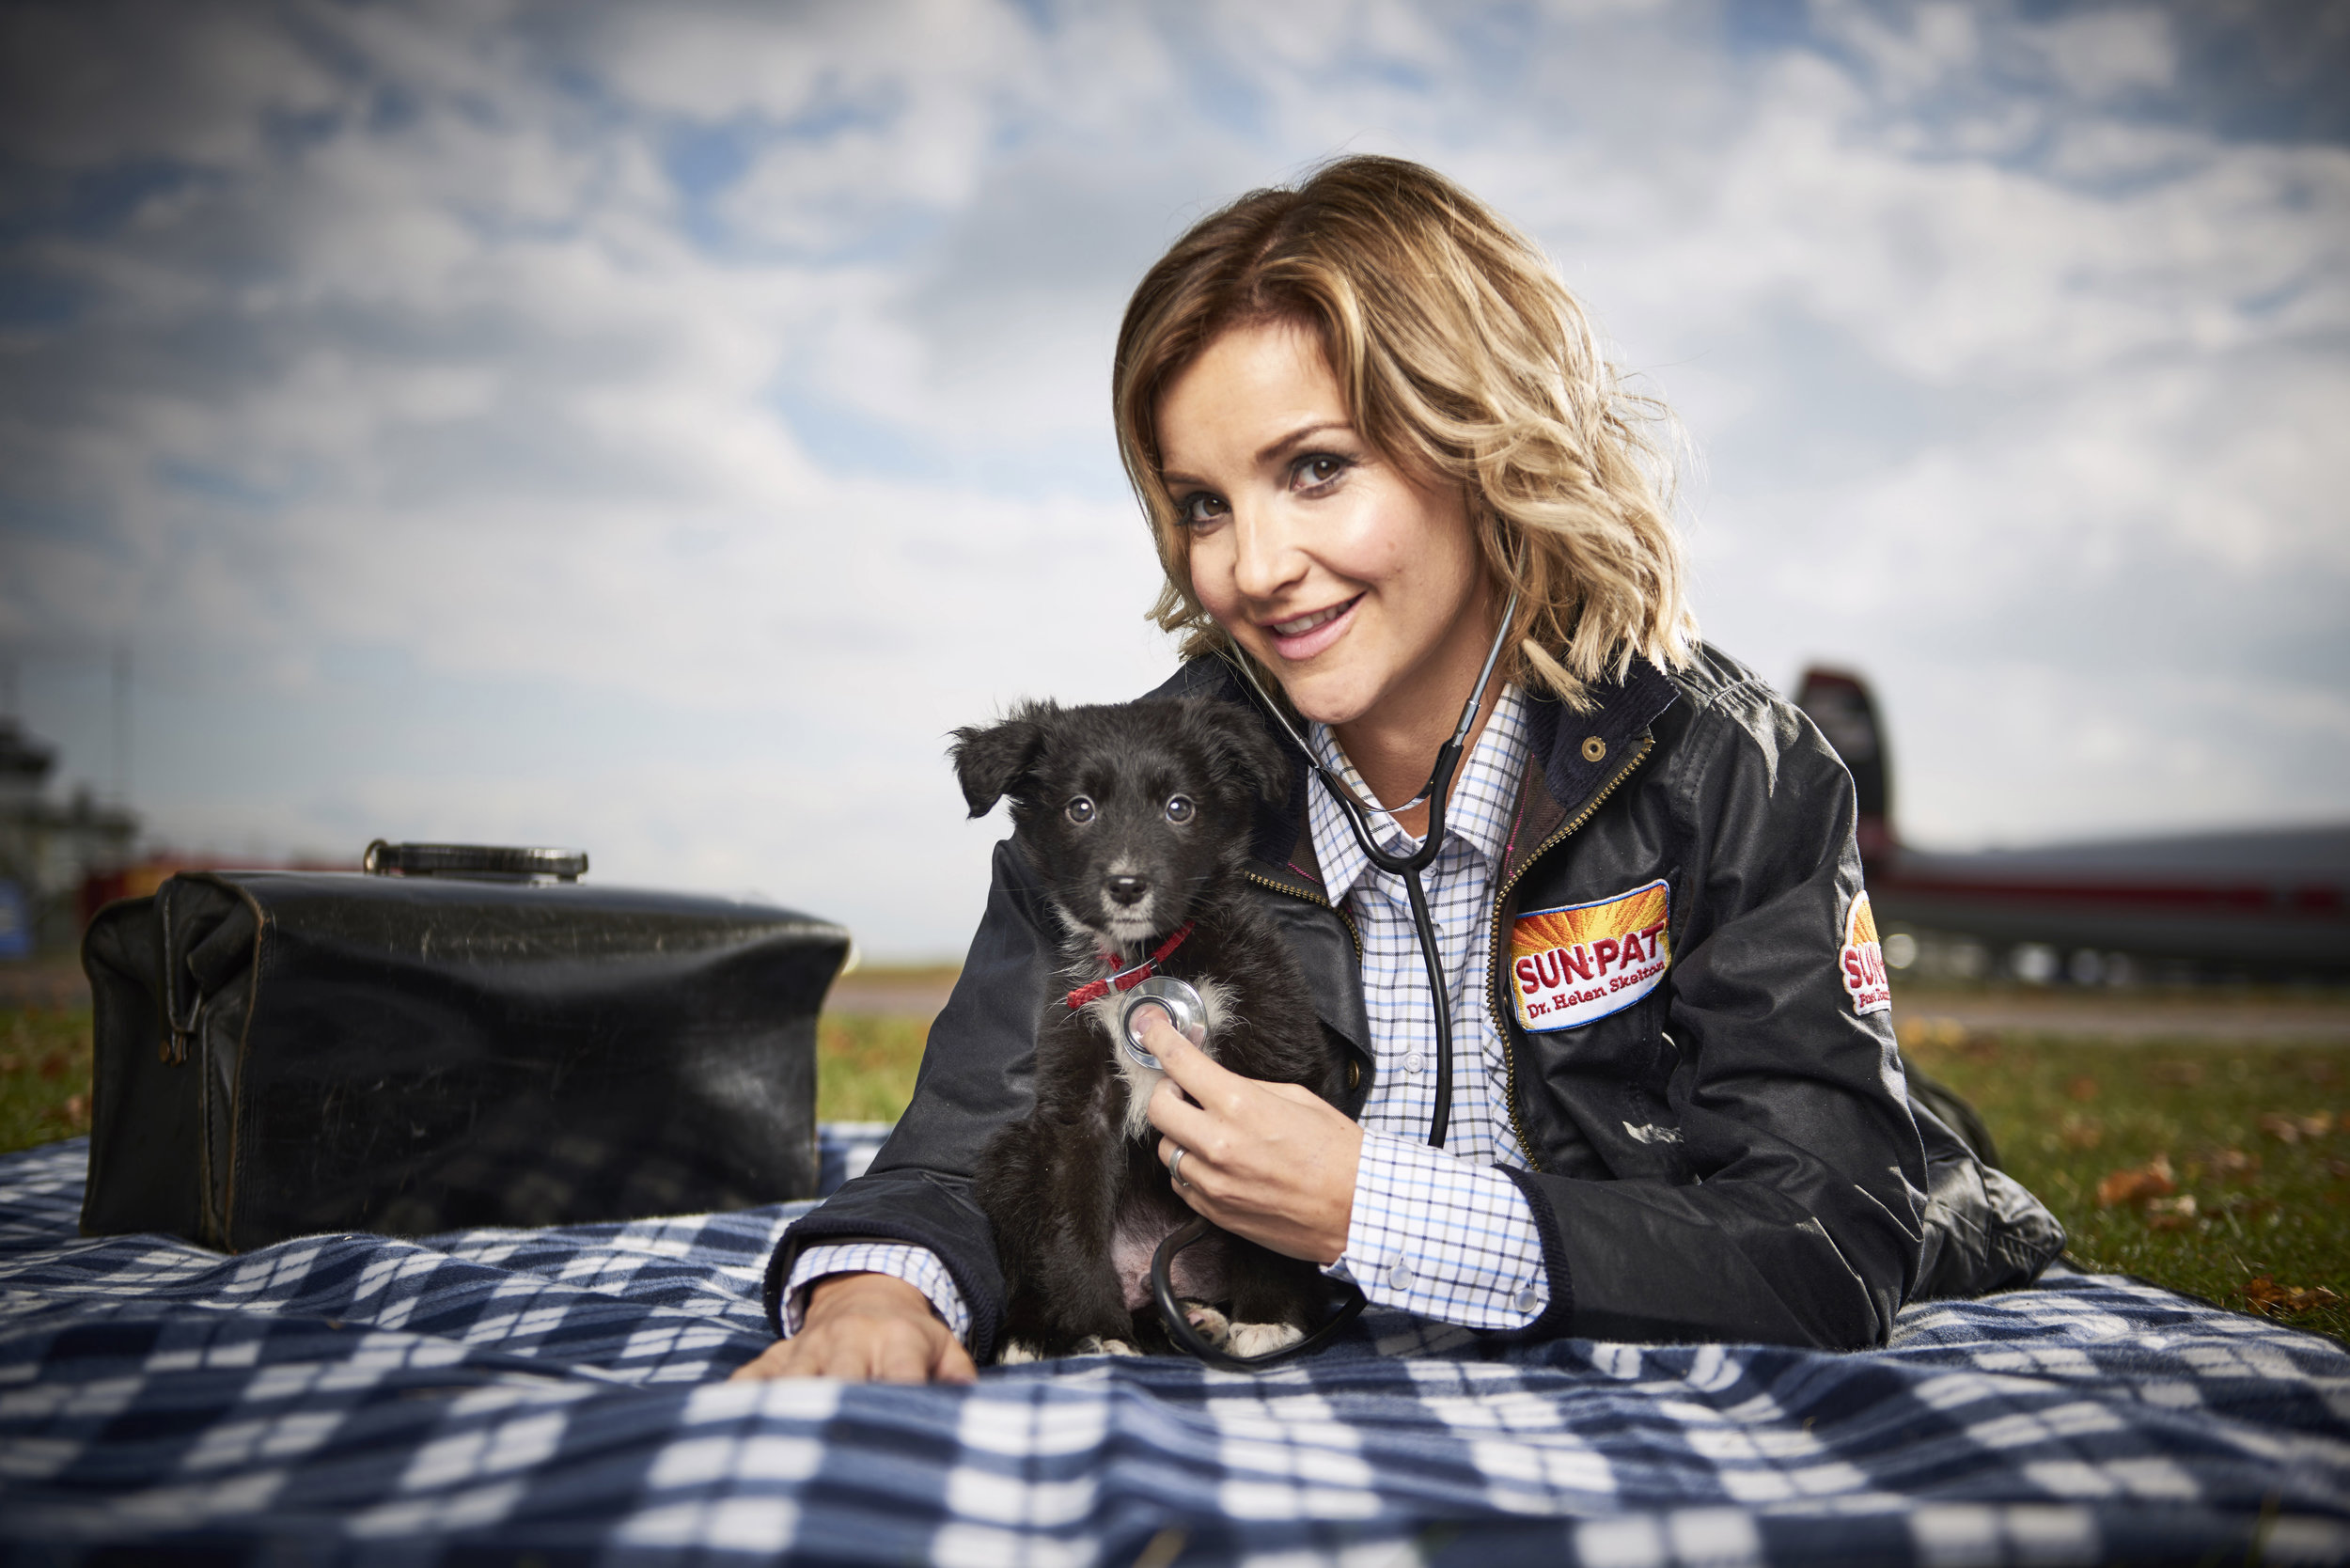 TV presenter Helen Skelton realises her childhood dream of being a vet as research by Sun-Pat Peanut Butter reveals that 4 out of 5 people who had an active childhood achieved their dreams.jpg